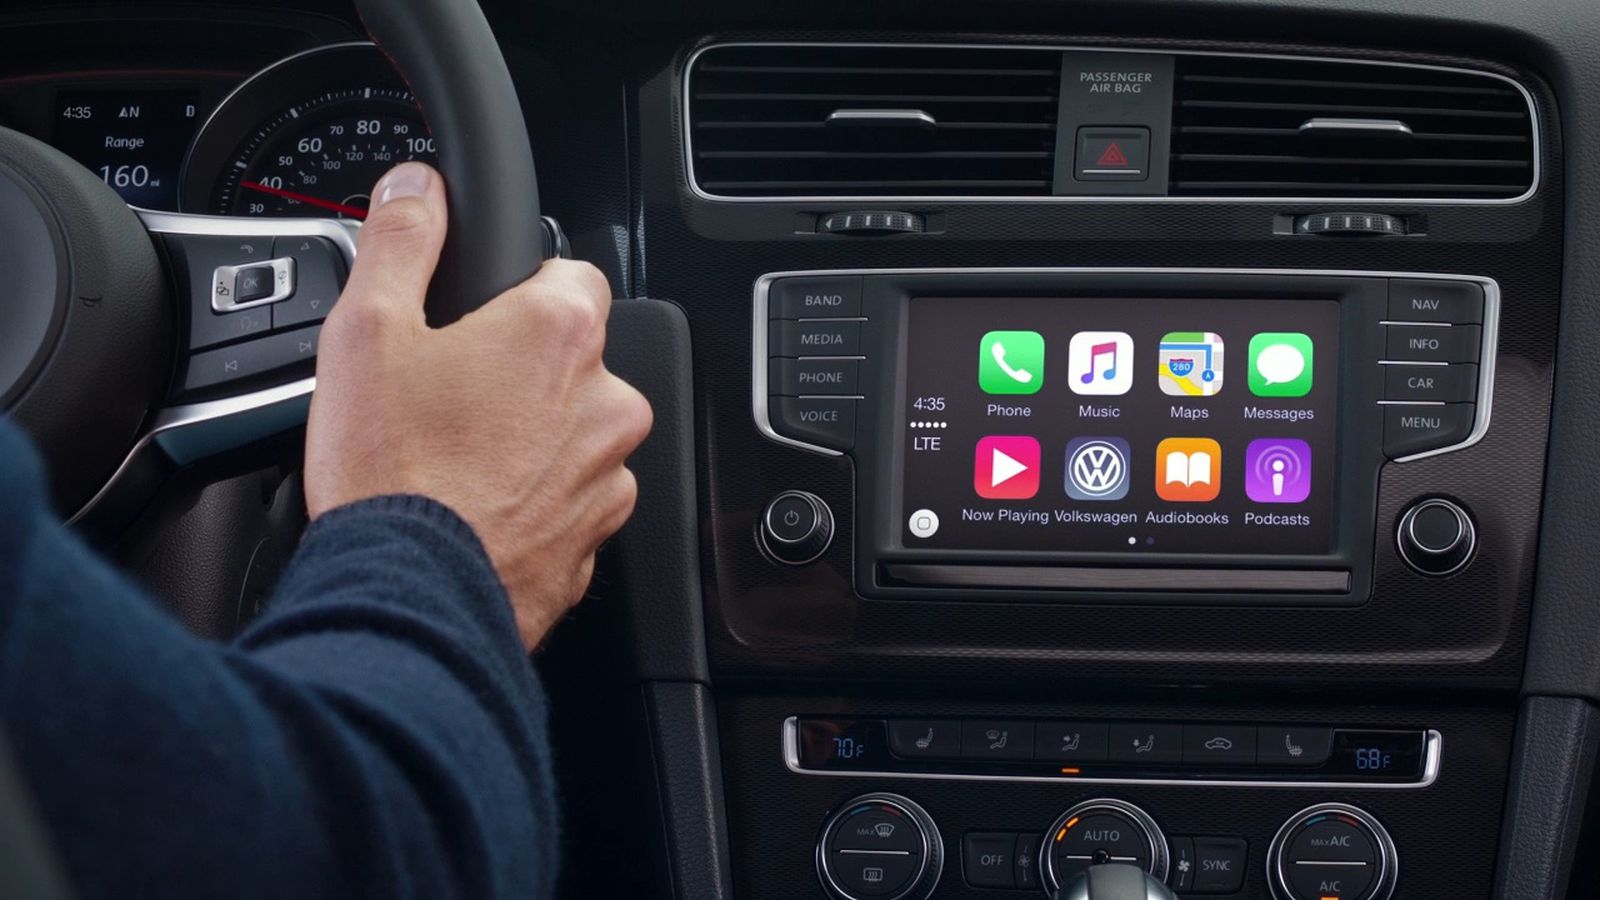 volkswagen says apple wouldn t let it demo wireless carplay the verge. Black Bedroom Furniture Sets. Home Design Ideas